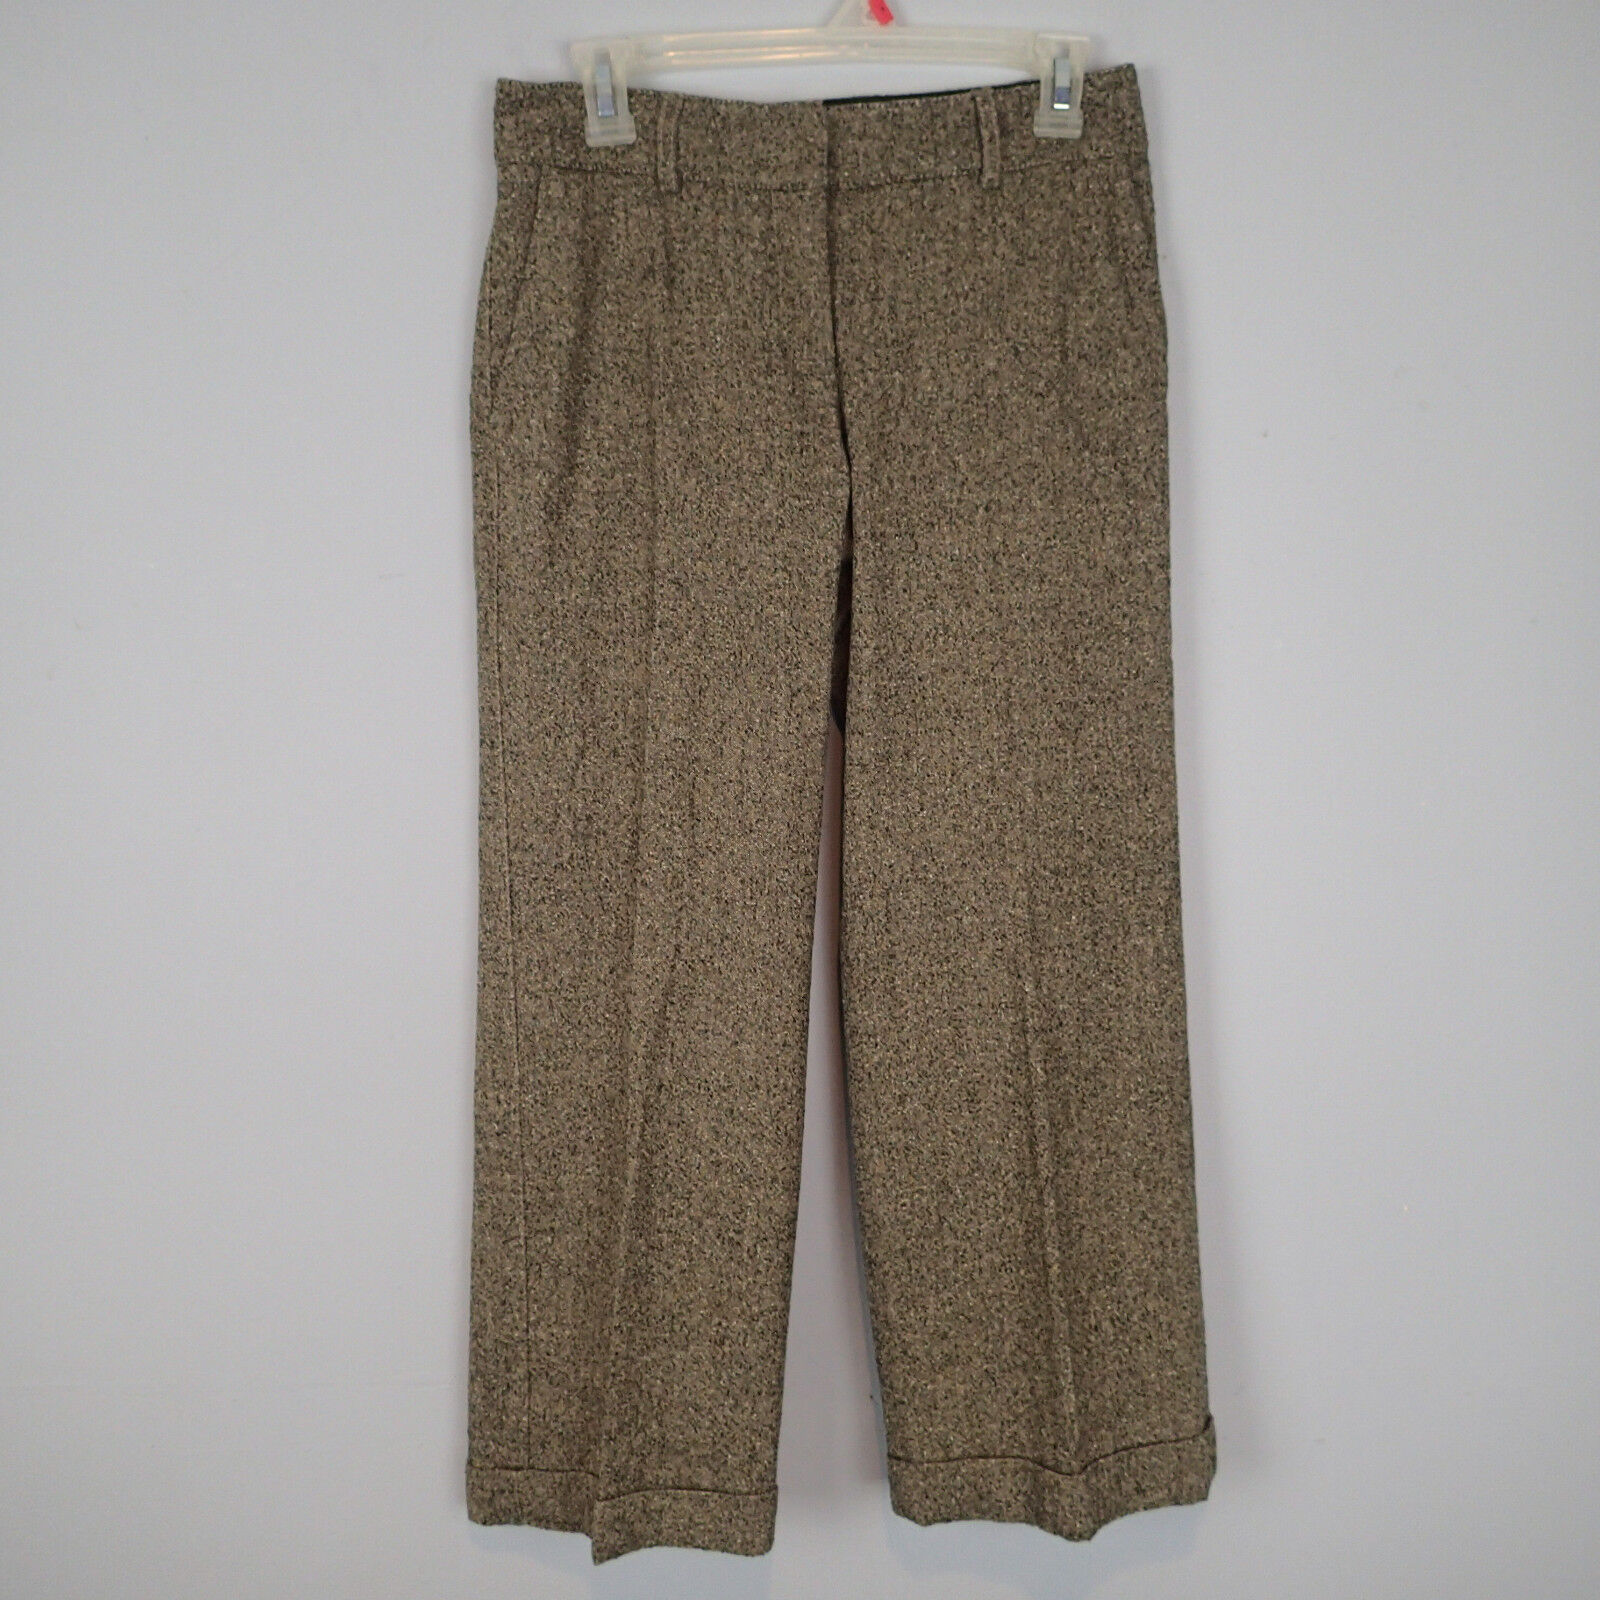 PIAZZA SEMPIONE CAPRIS  CROPPED  PANTS ITALY SZ 40 WOOL BLEND ry